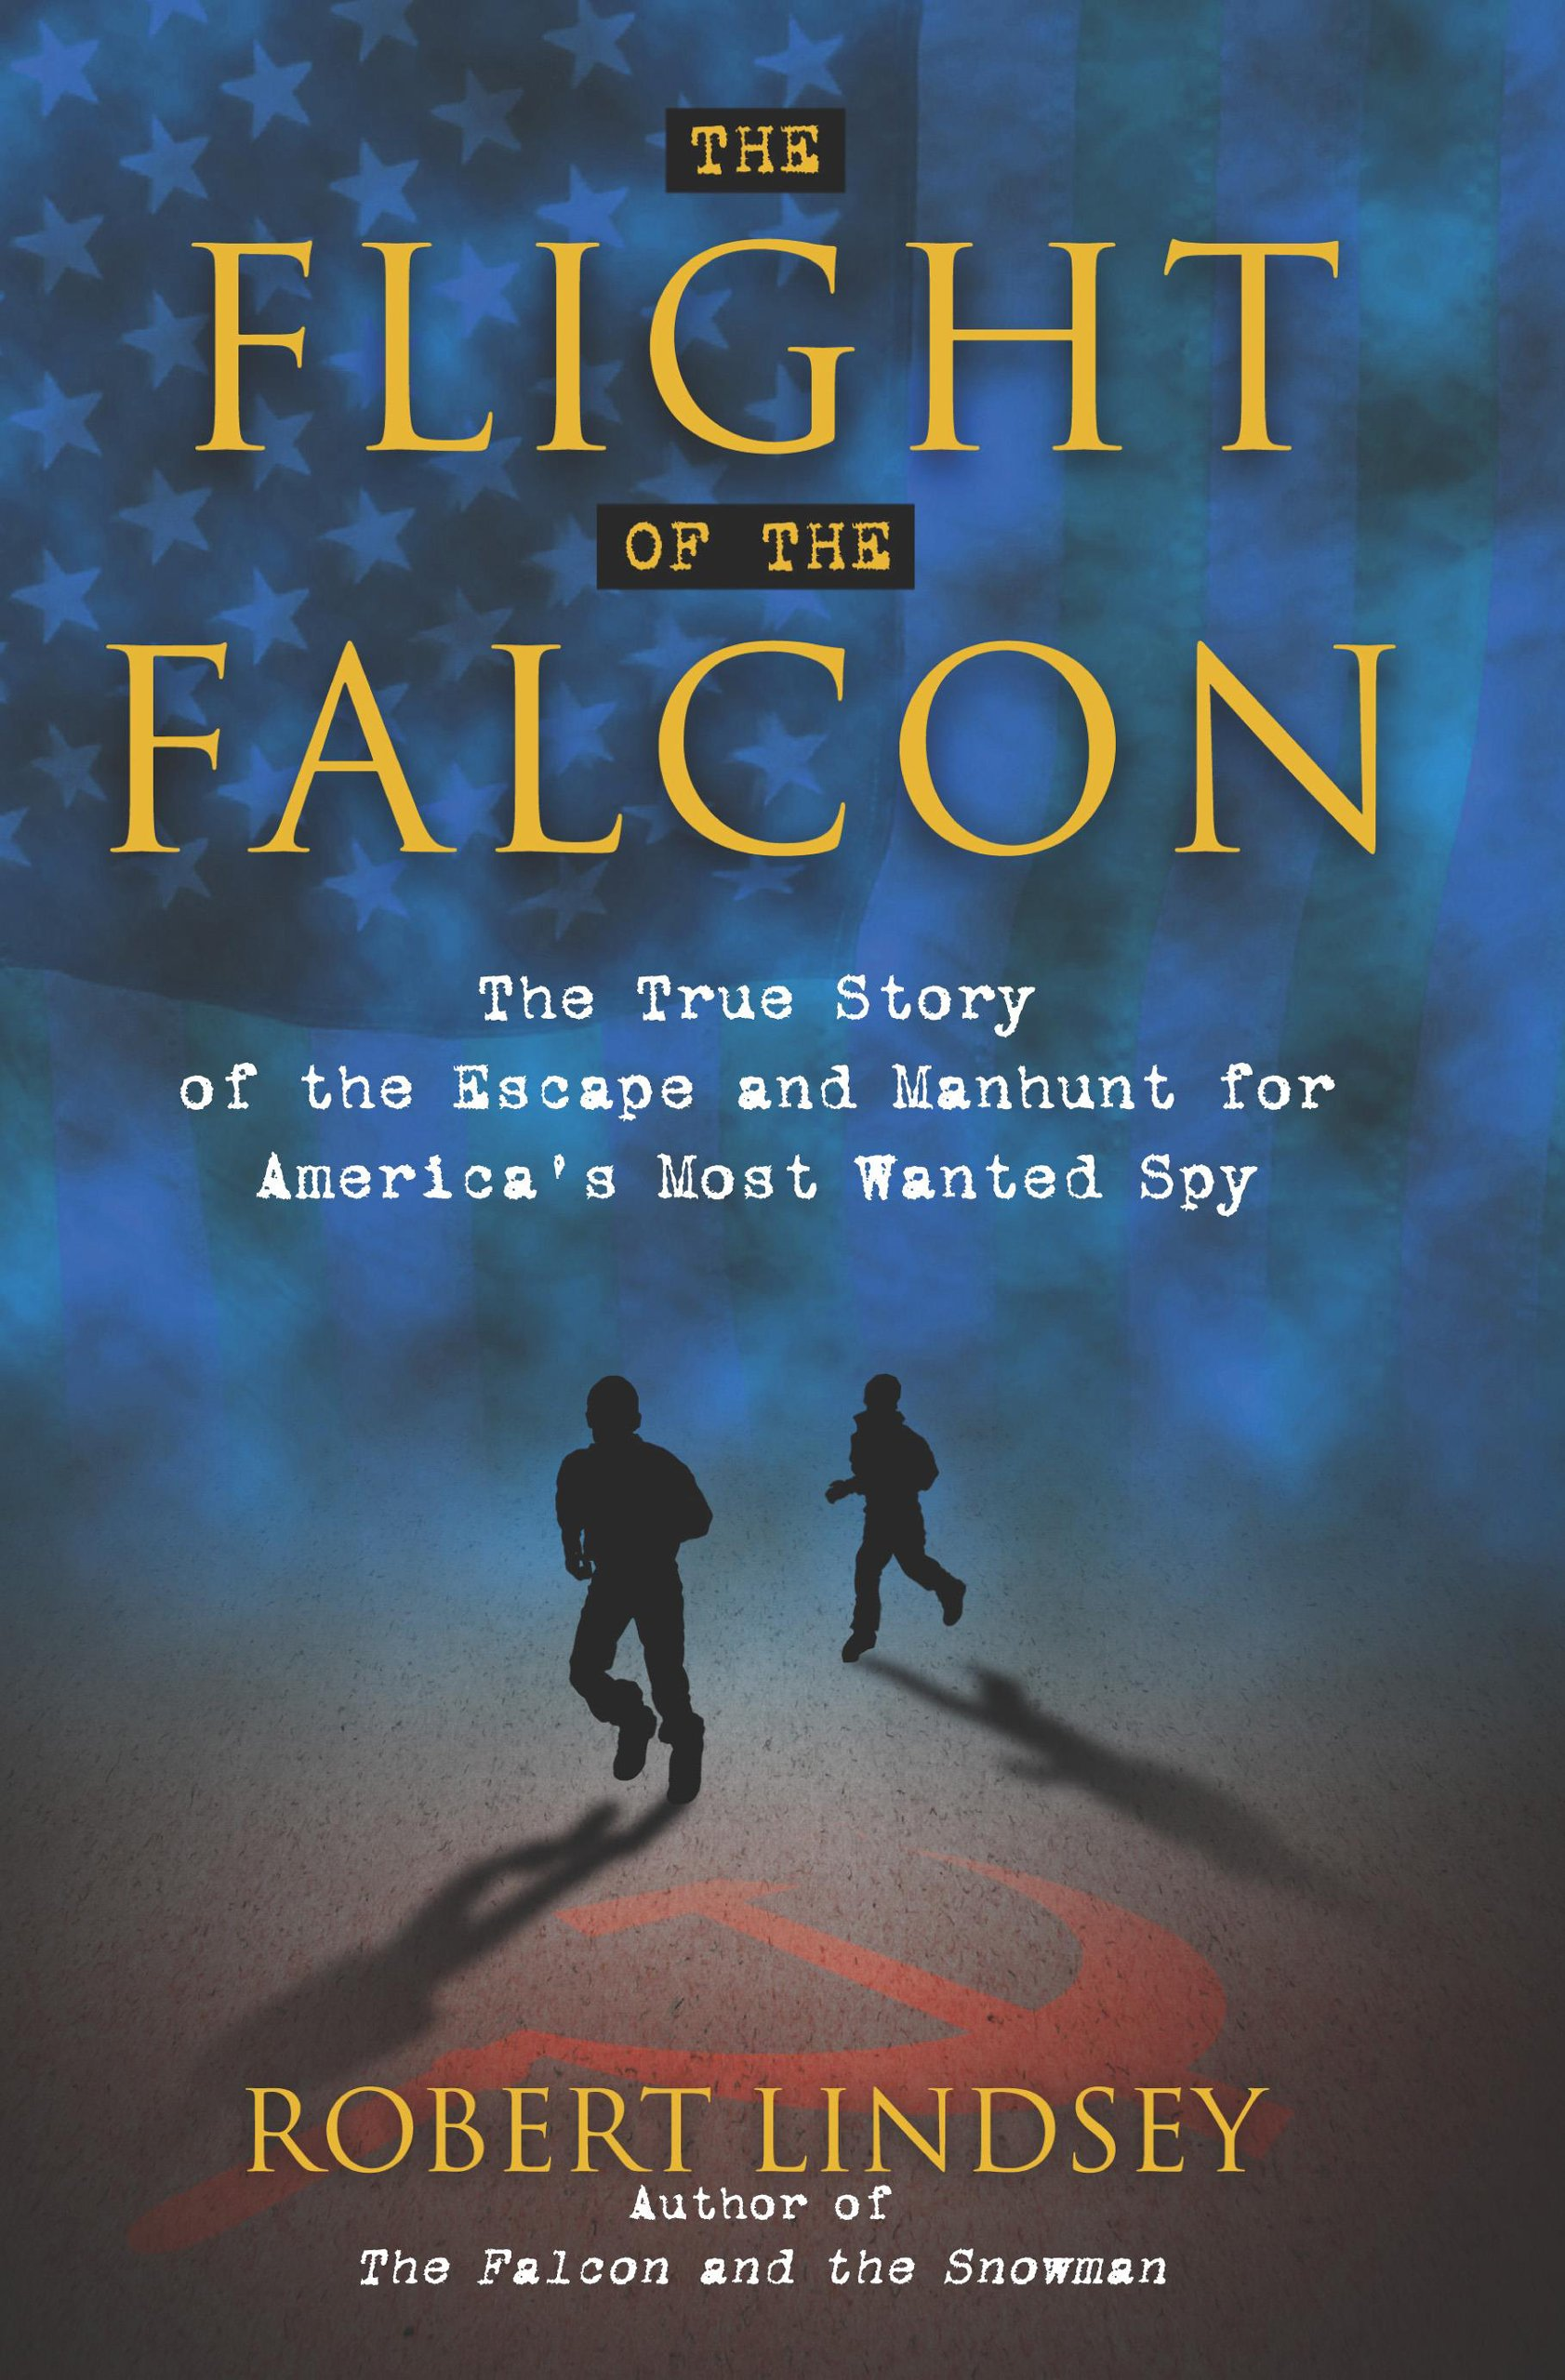 The Flight of the Falcon: The True Story of the Escape and Manhunt for America's Most Wanted Spy pdf epub